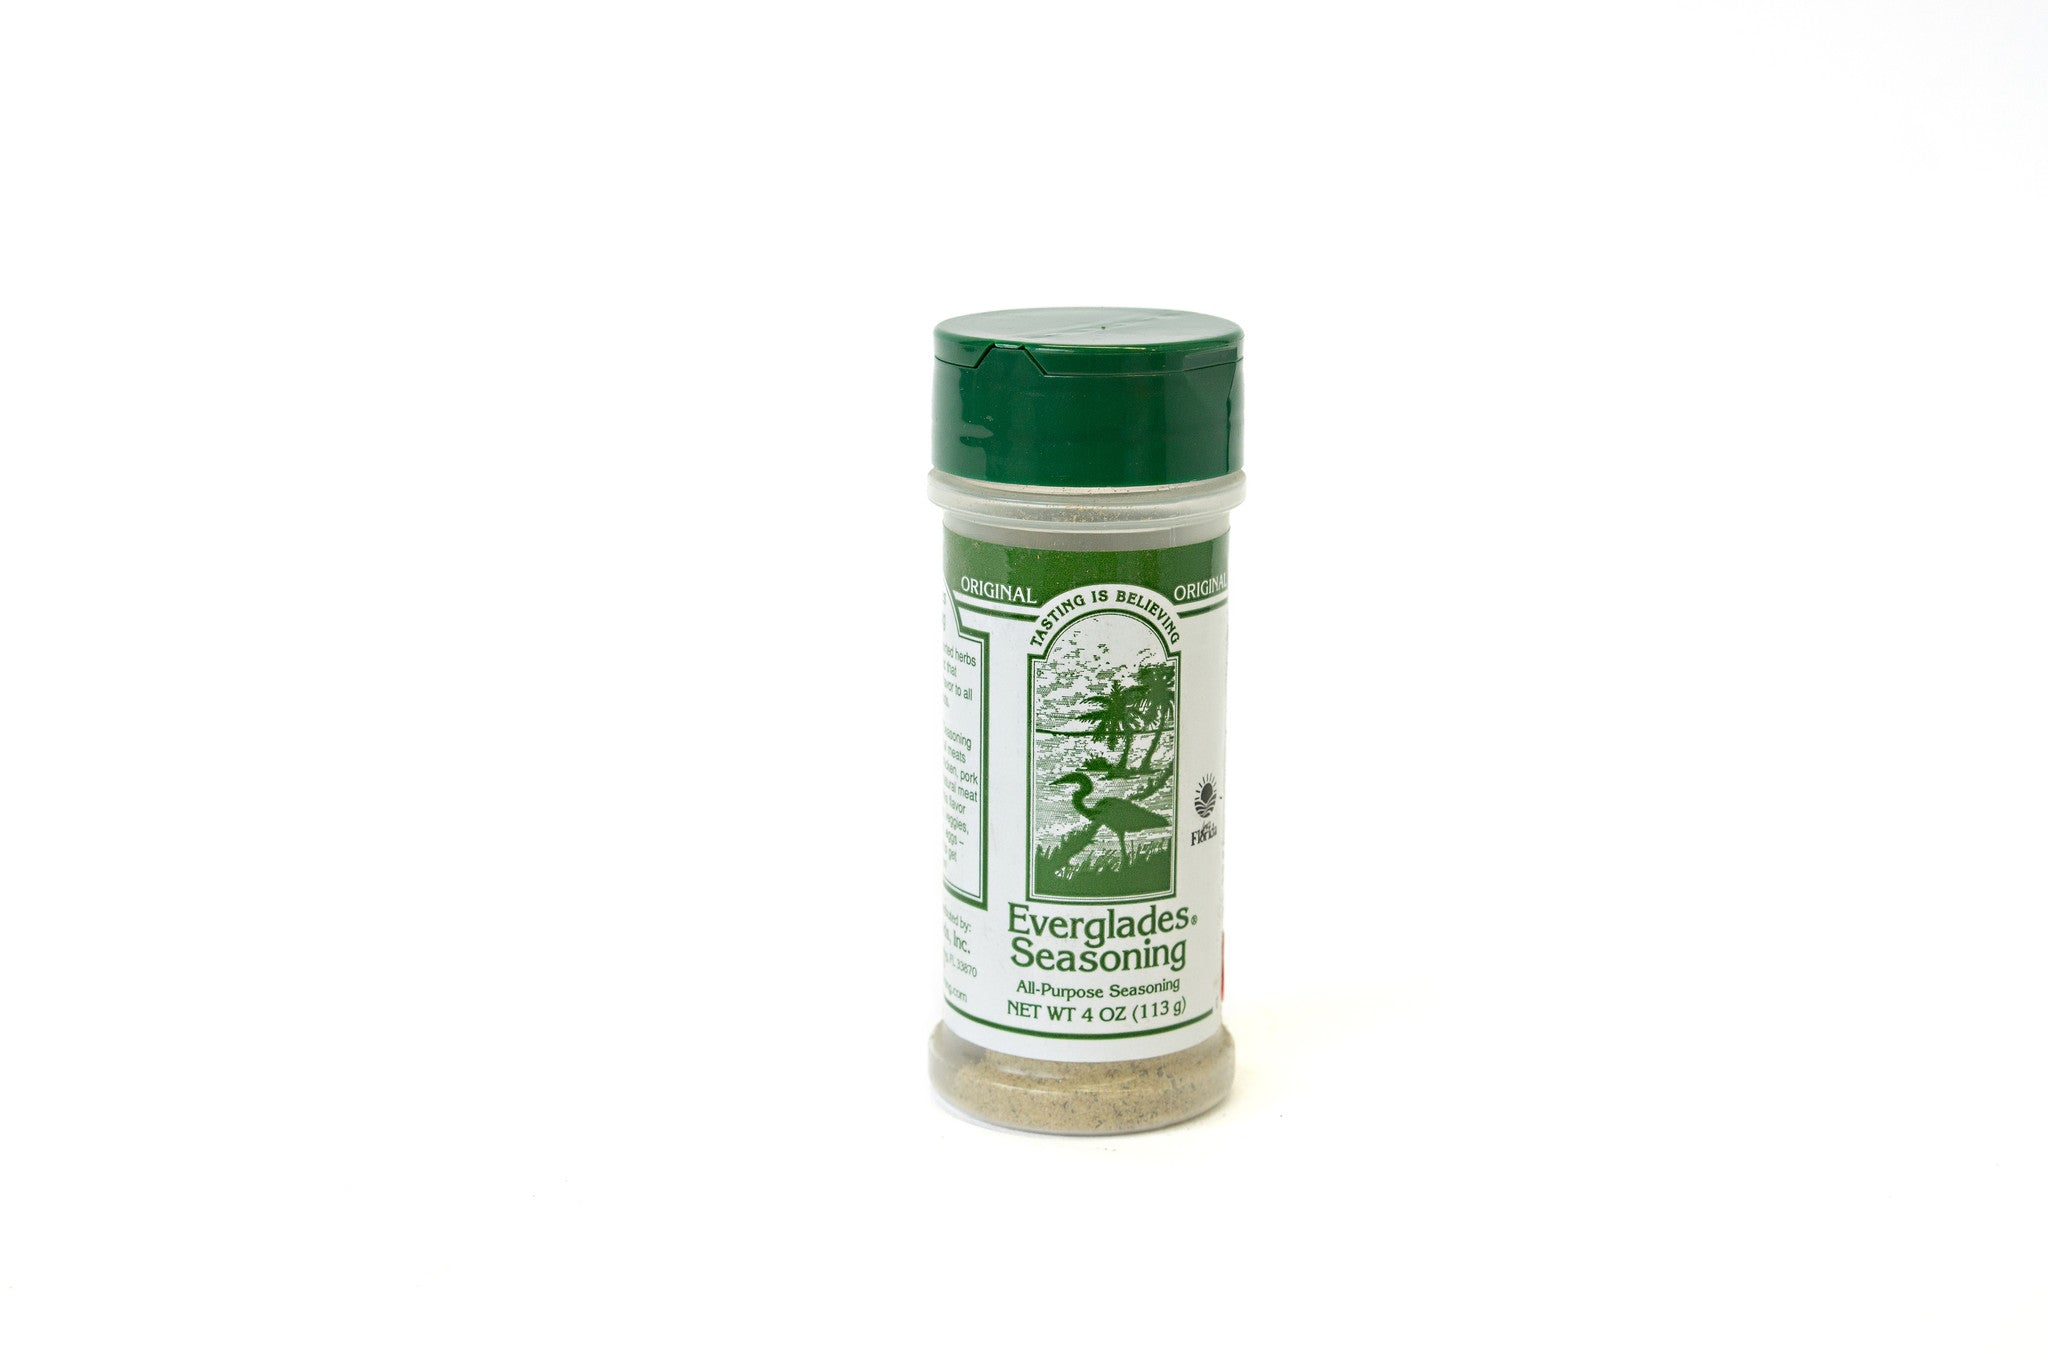 Everglades Seasoning